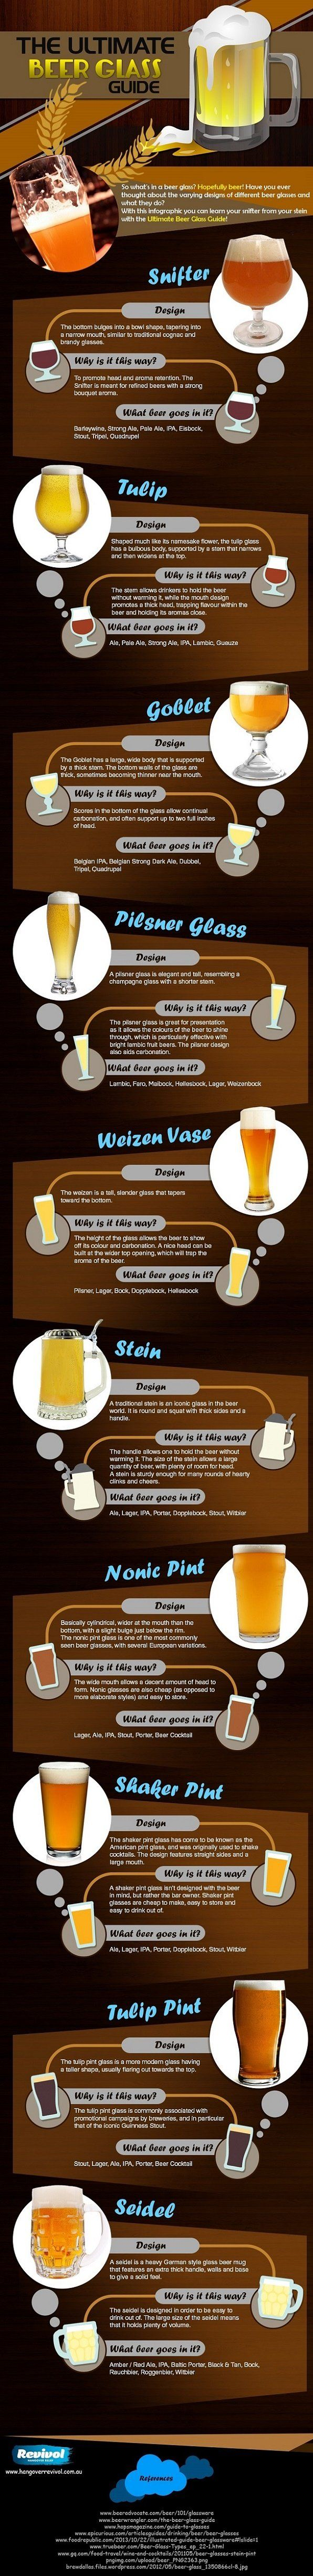 "This Is How To Pick The Right Glass For The Right Beer www.LiquorList.com ""The Marketplace for Adults with Taste!"" #LiquorList @LiquorListcom"